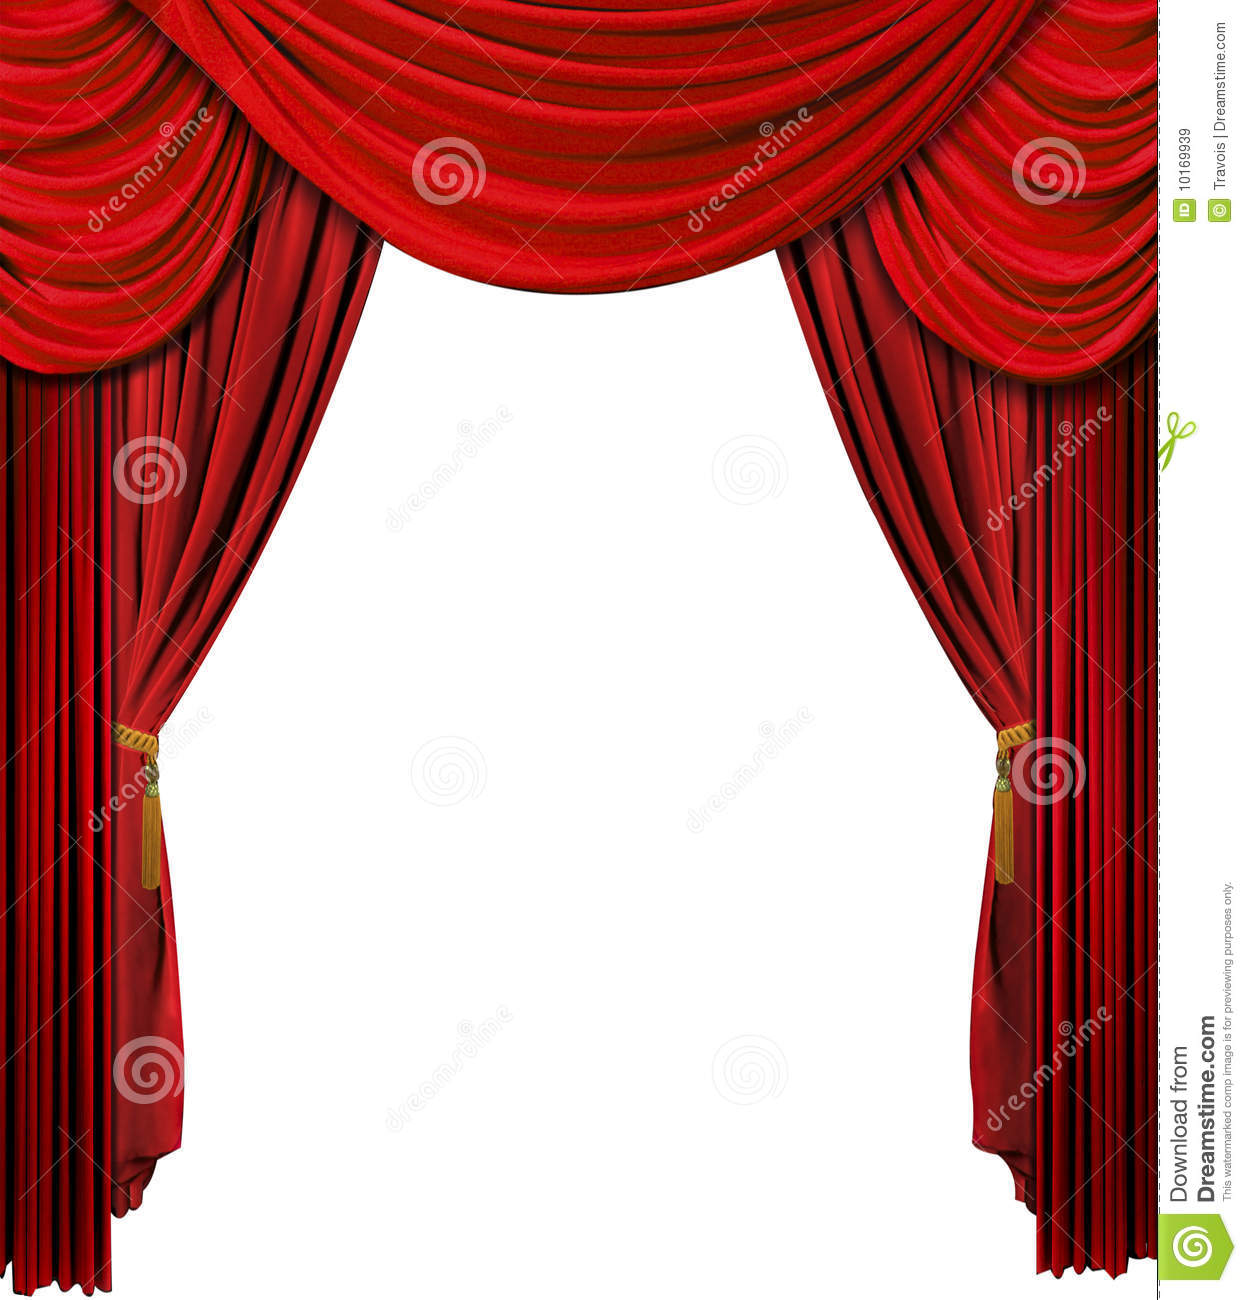 Black and white theater curtains - Stage Curtain Royalty Free Stock Images Image 10169939